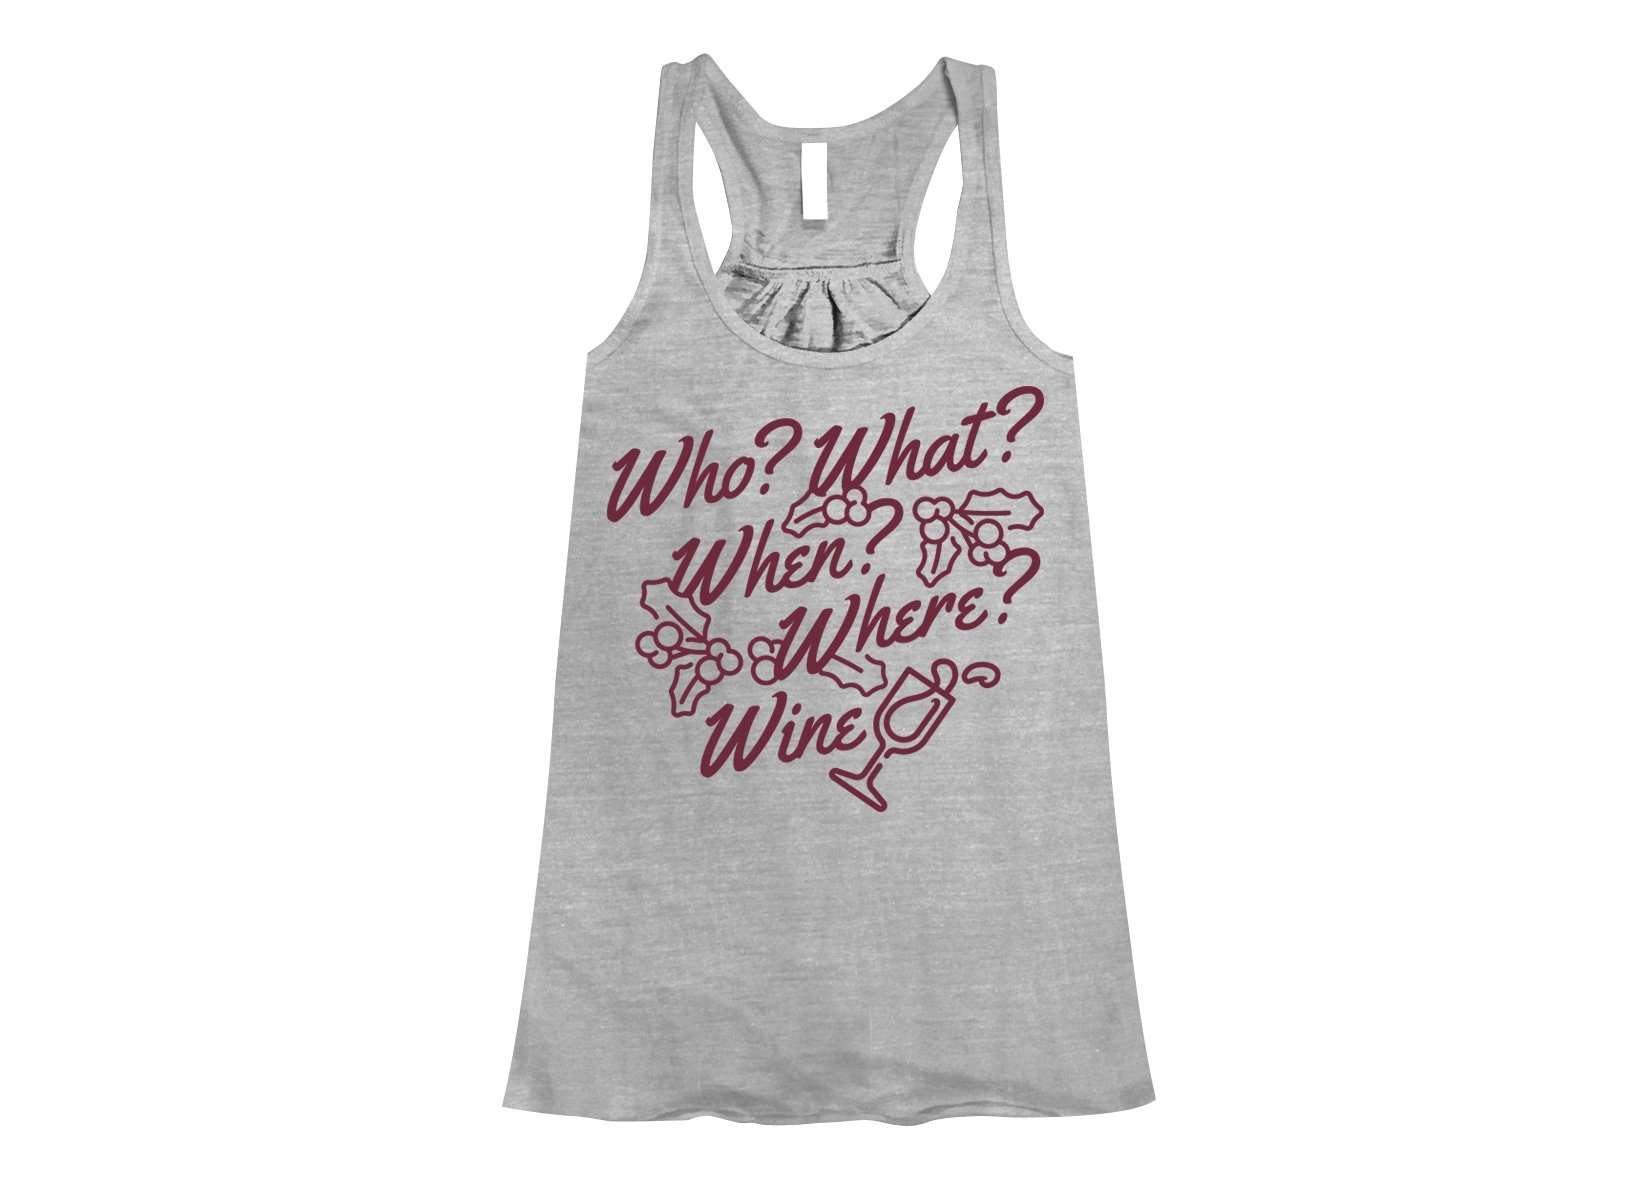 Who? What? When? Where? Wine? on Womens Tanks T-Shirt